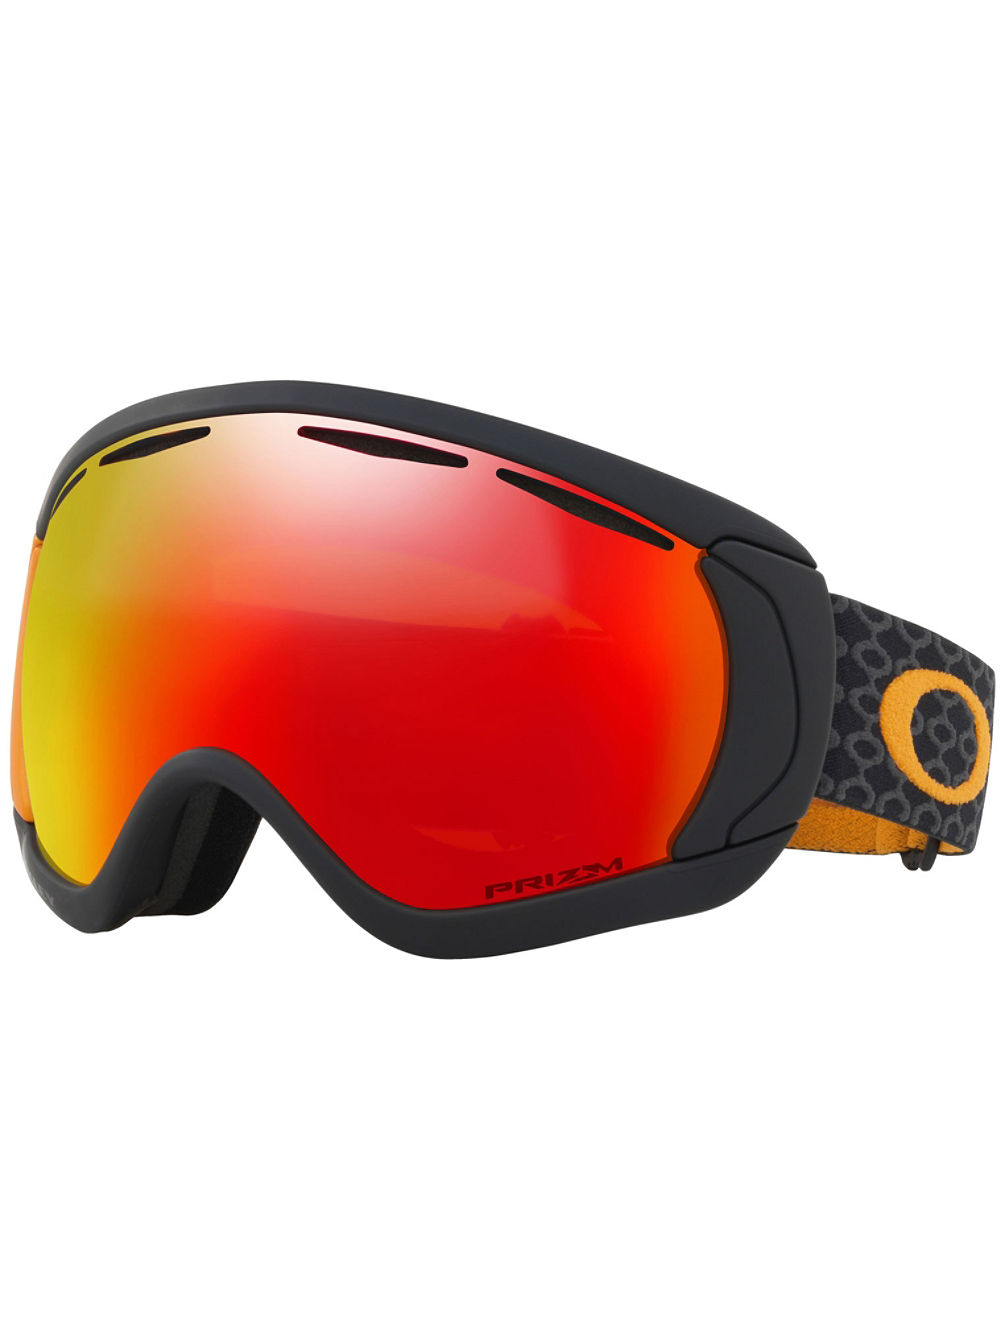 Canopy Aksel Lund Signature Skygger Black Orange Goggle